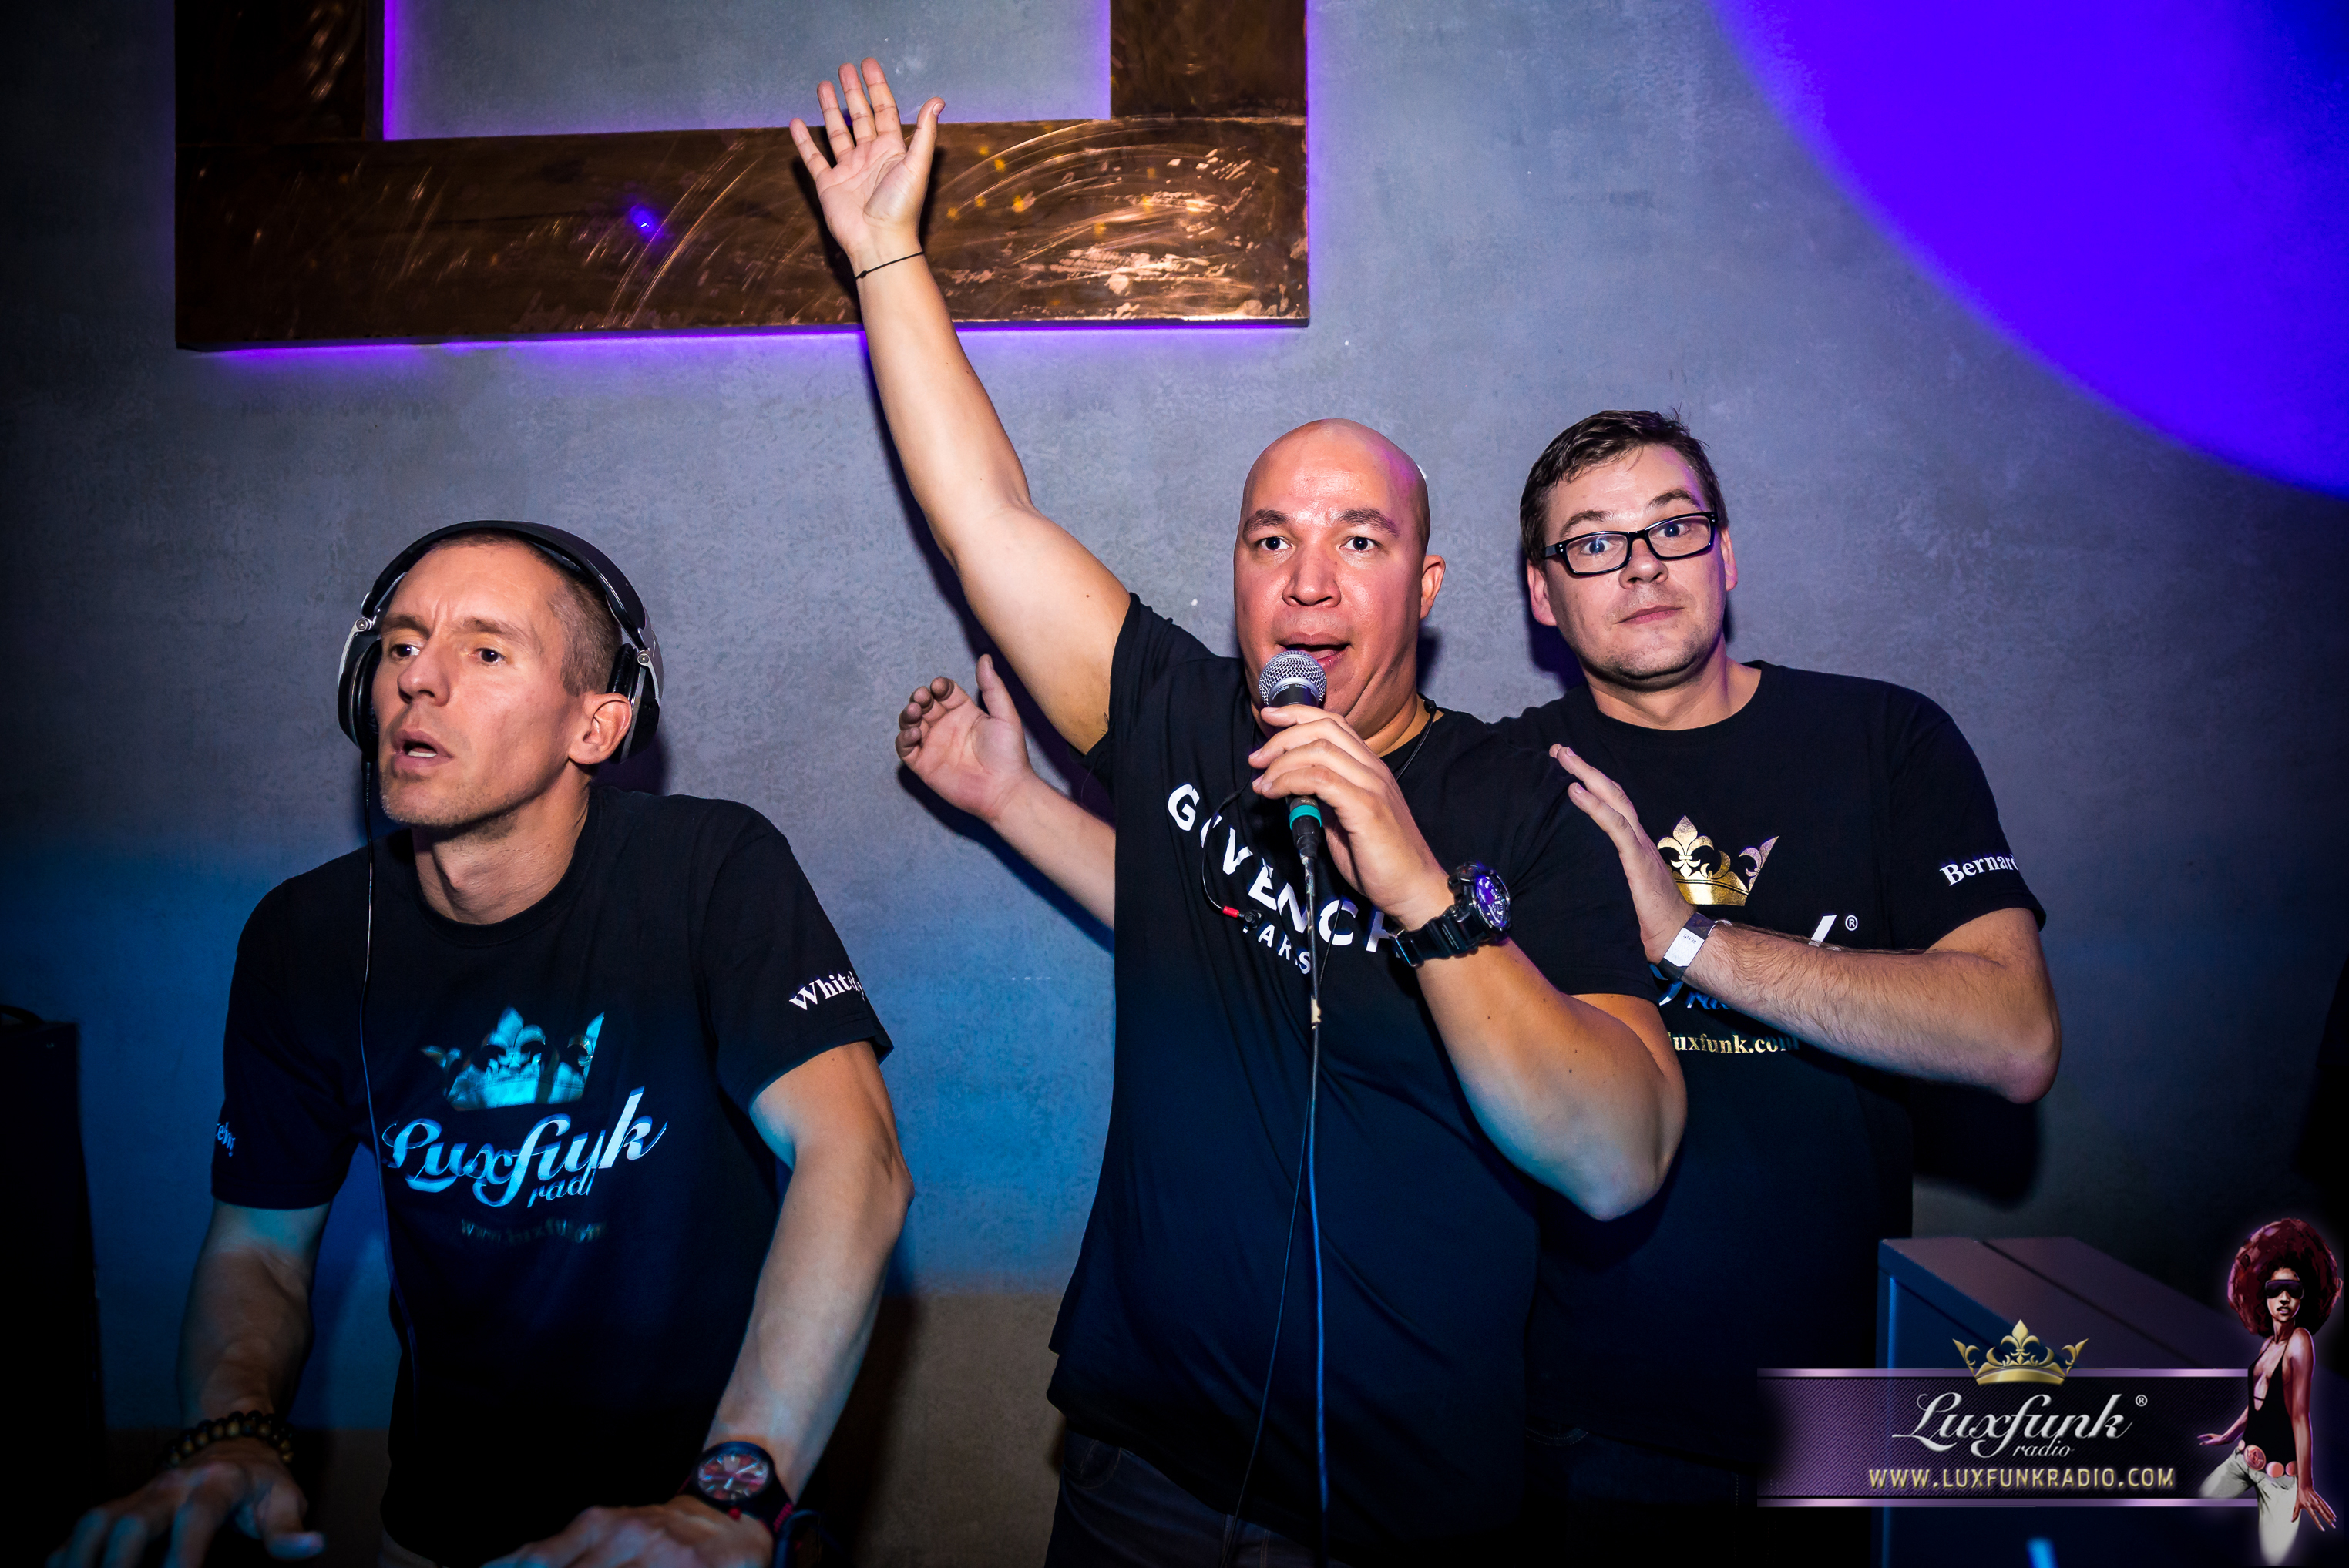 luxfunk-radio-funky-party-20191108-lock-budapest-1359